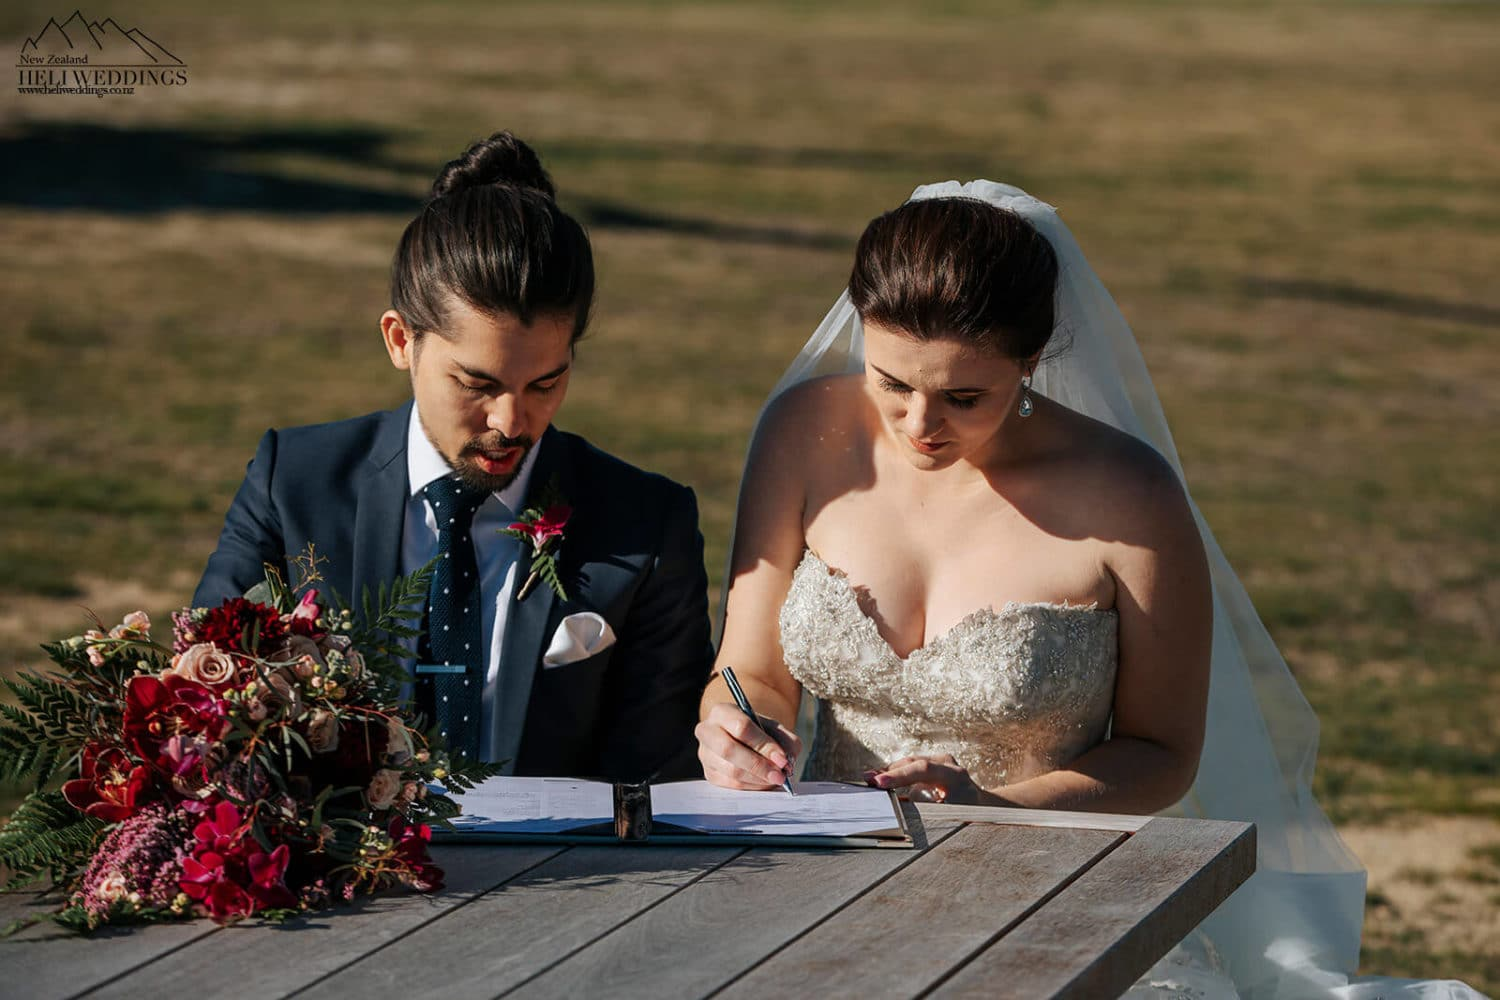 Signing the wedding license in Queenstown